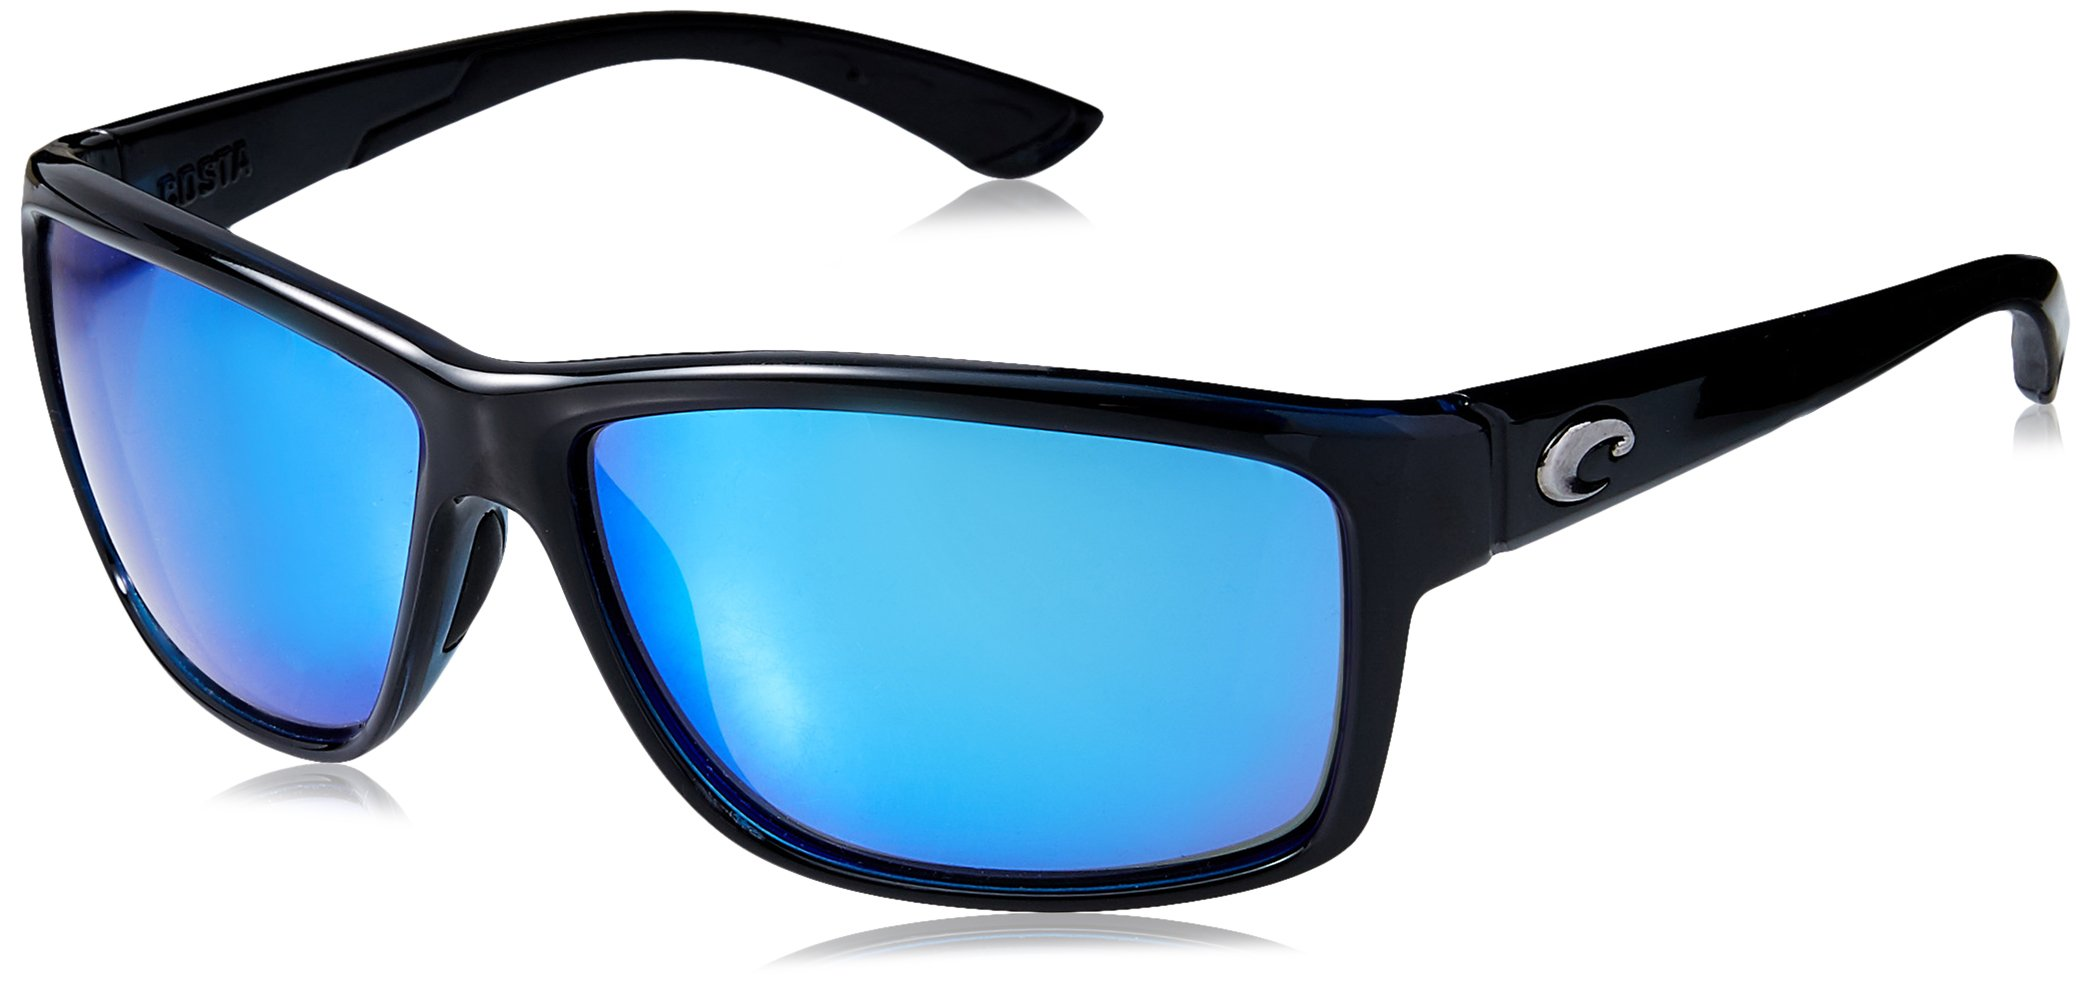 Costa del Mar Unisex-Adult Mag Bay AA 11 OBMGLP Polarized Iridium Wrap Sunglasses, Shiny Black, 63.2 mm by Costa Del Mar